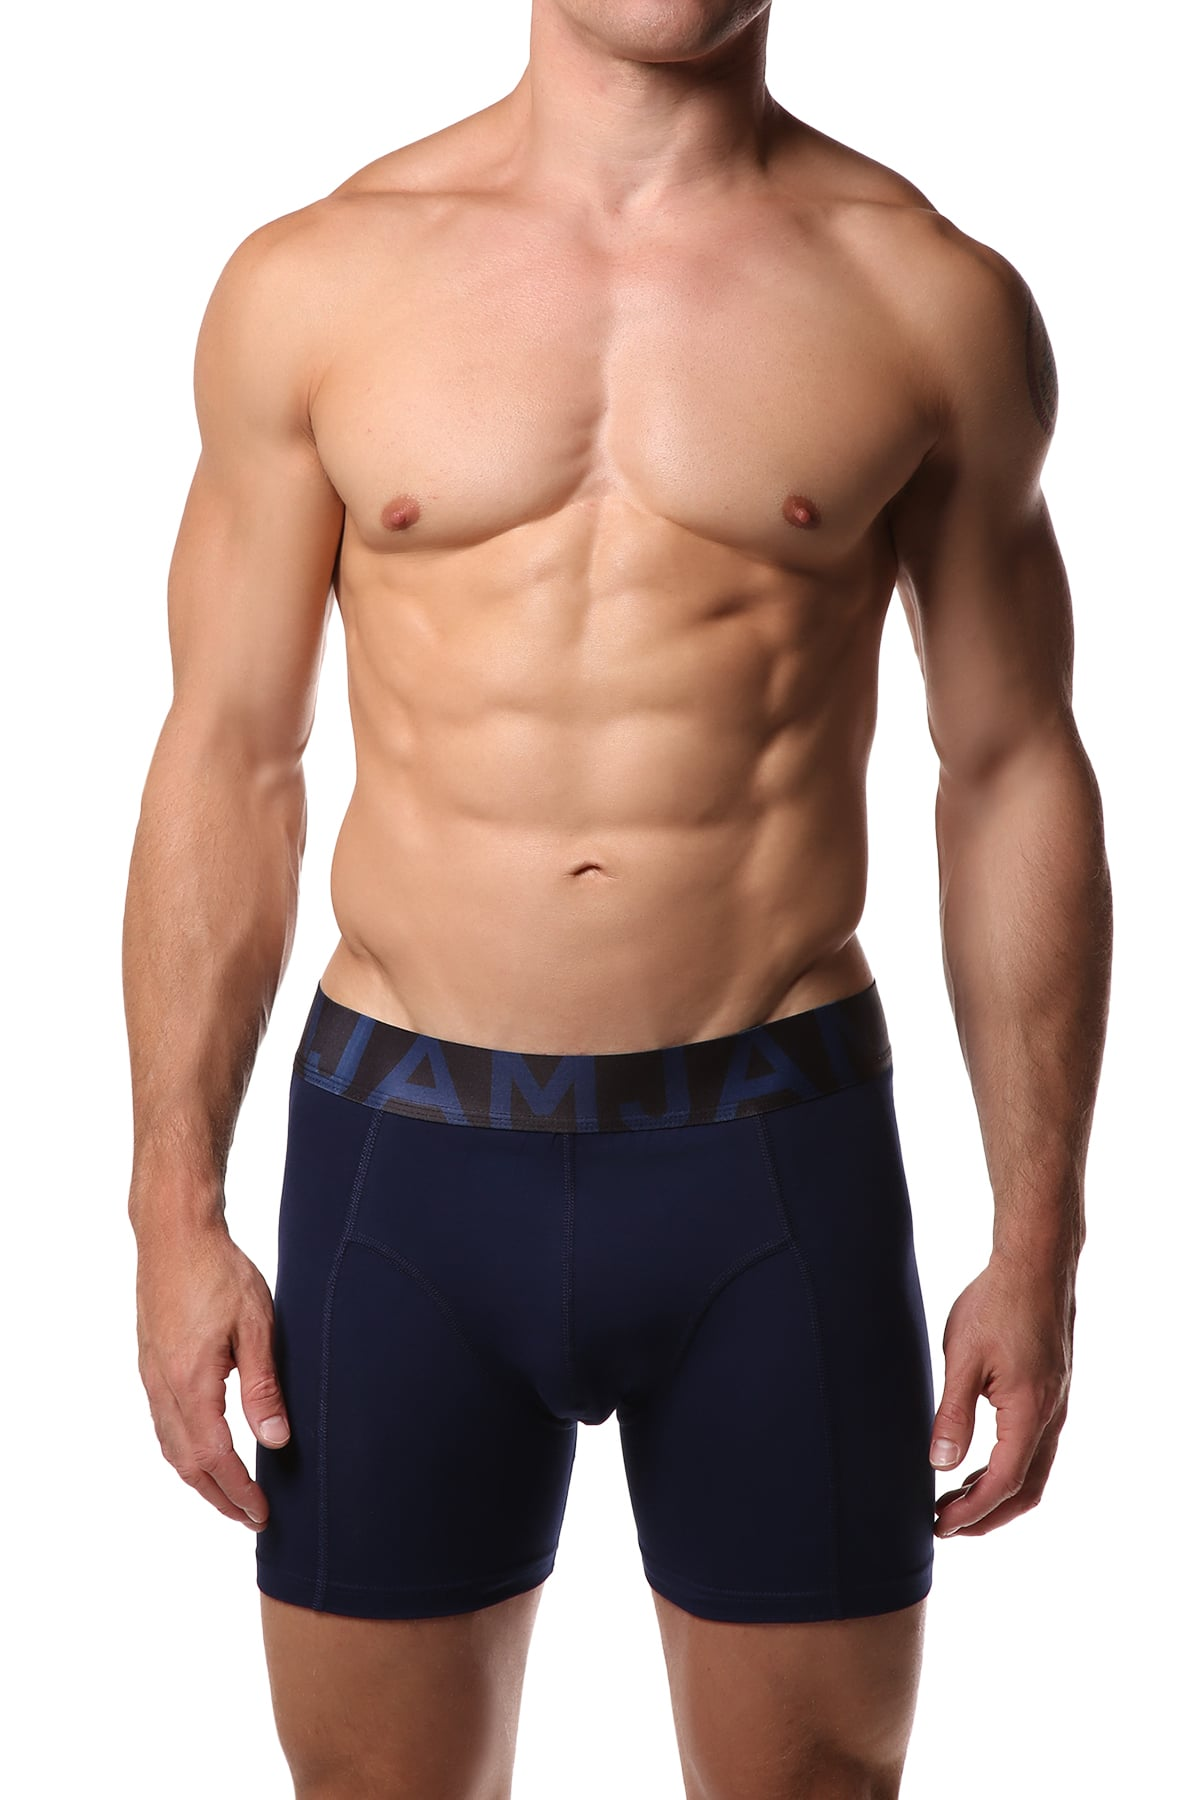 Jam Navy Boxer Brief